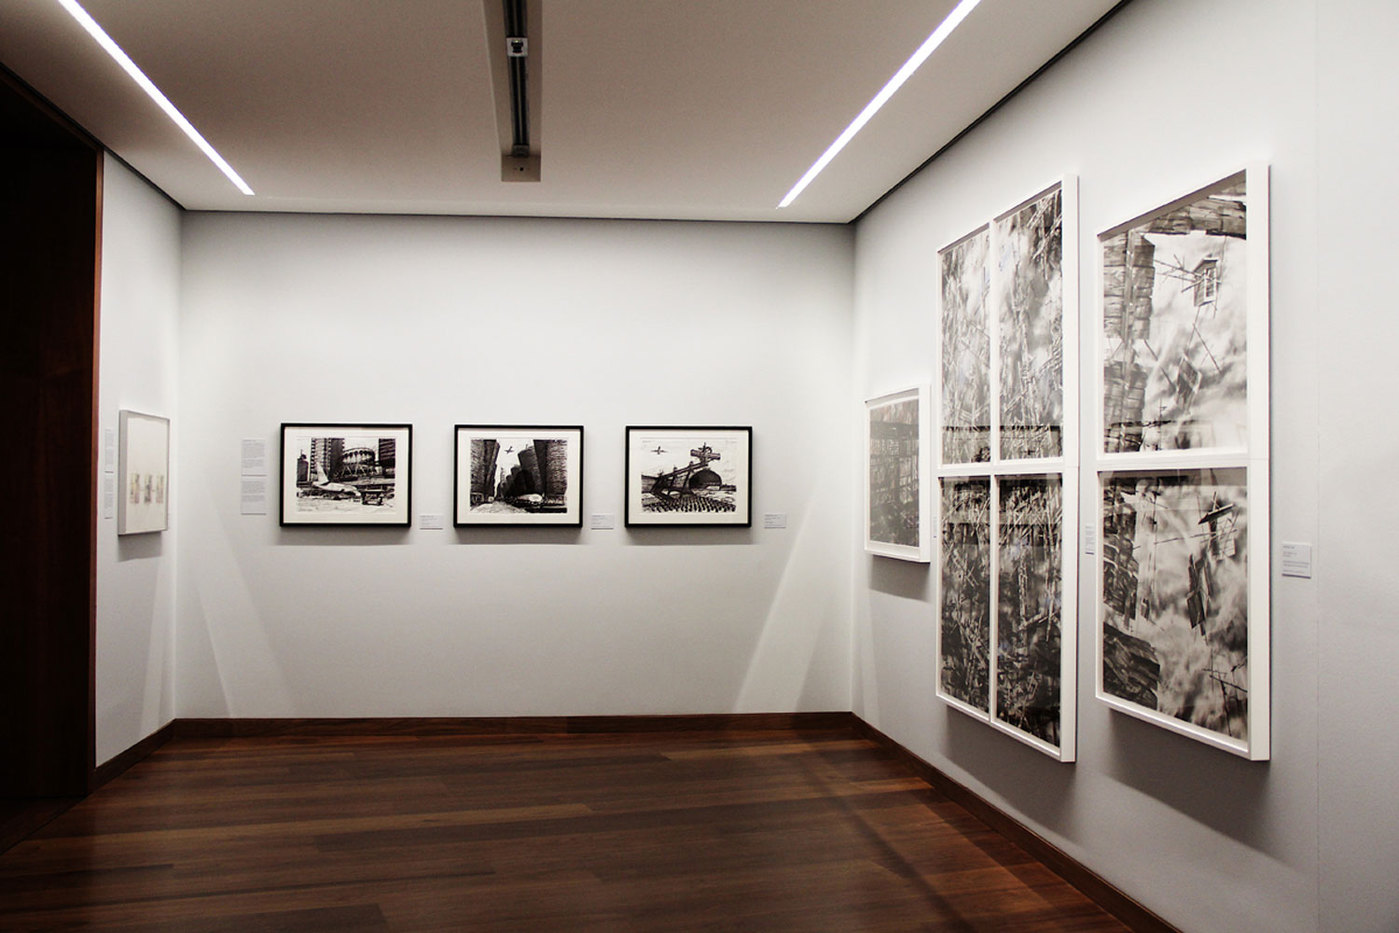 recent drawings photo of American Perspectives exhibit at Tchoban Foundation Museum for Architectural Drawing in Berlin